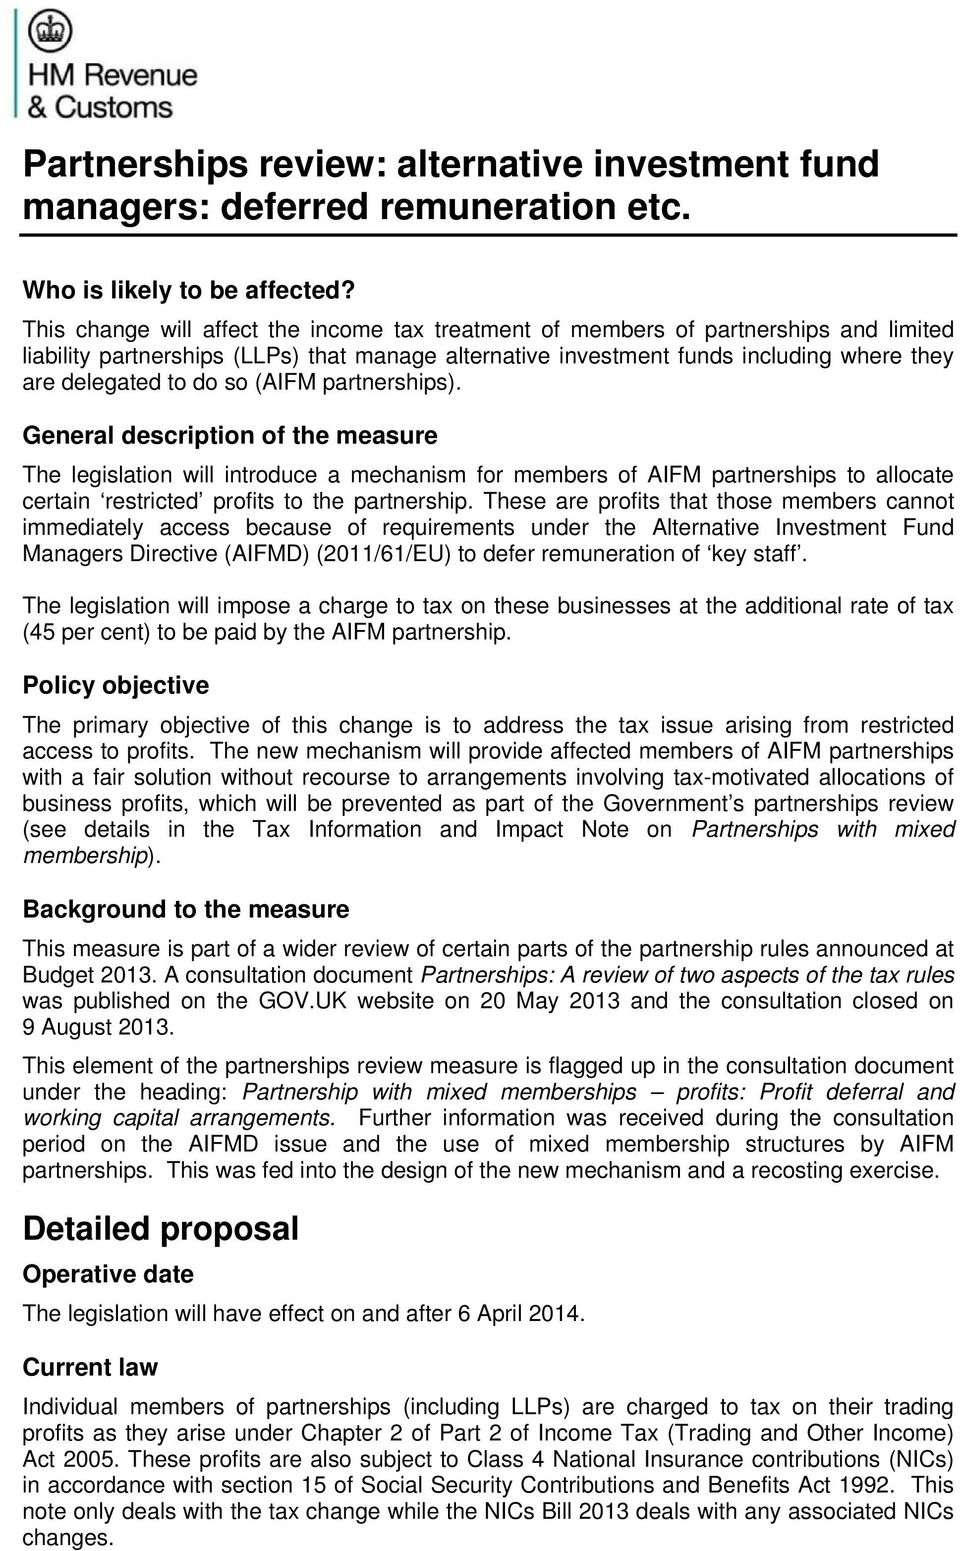 so (AIFM partnerships). General description of the measure The legislation will introduce a mechanism for members of AIFM partnerships to allocate certain restricted profits to the partnership.